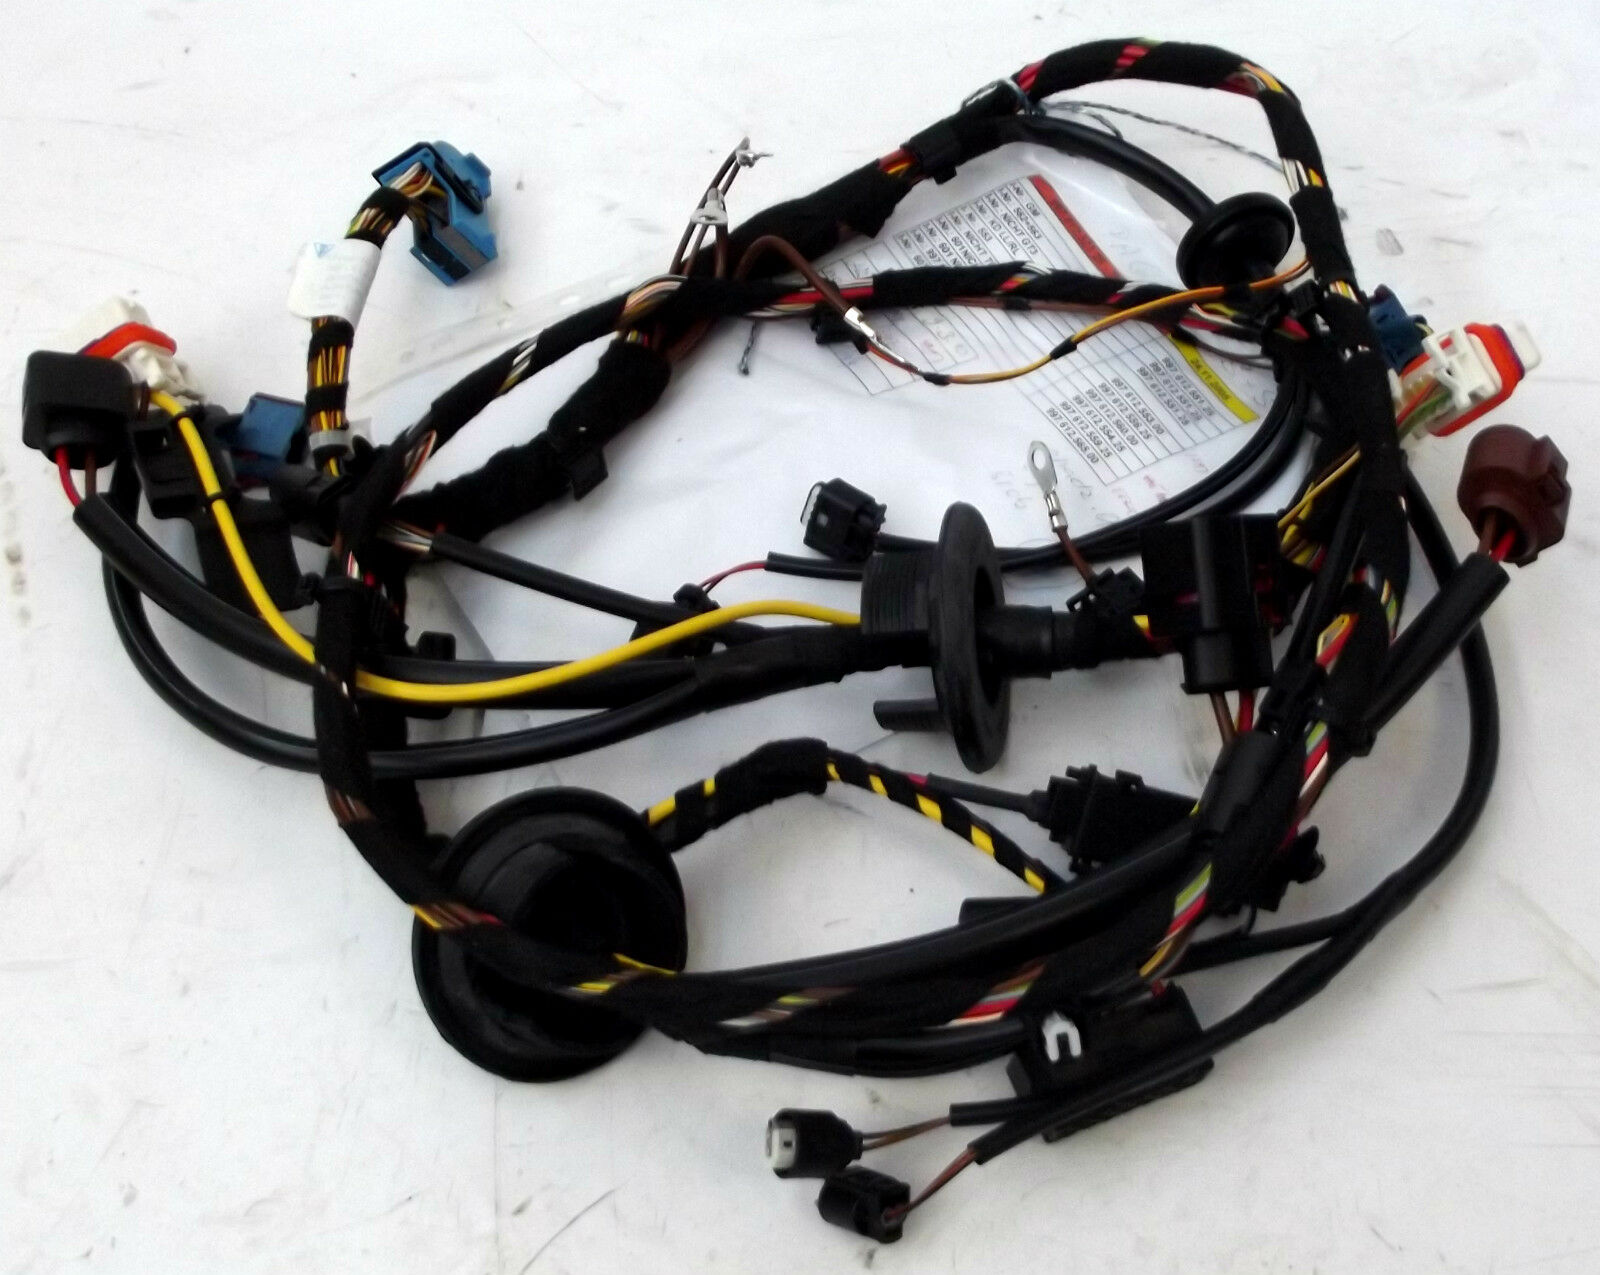 Genuine Porsche 997 Carrera Gen Ii Front End Wiring Harness For Cars 911 With Xenon 1 Of 1only Available